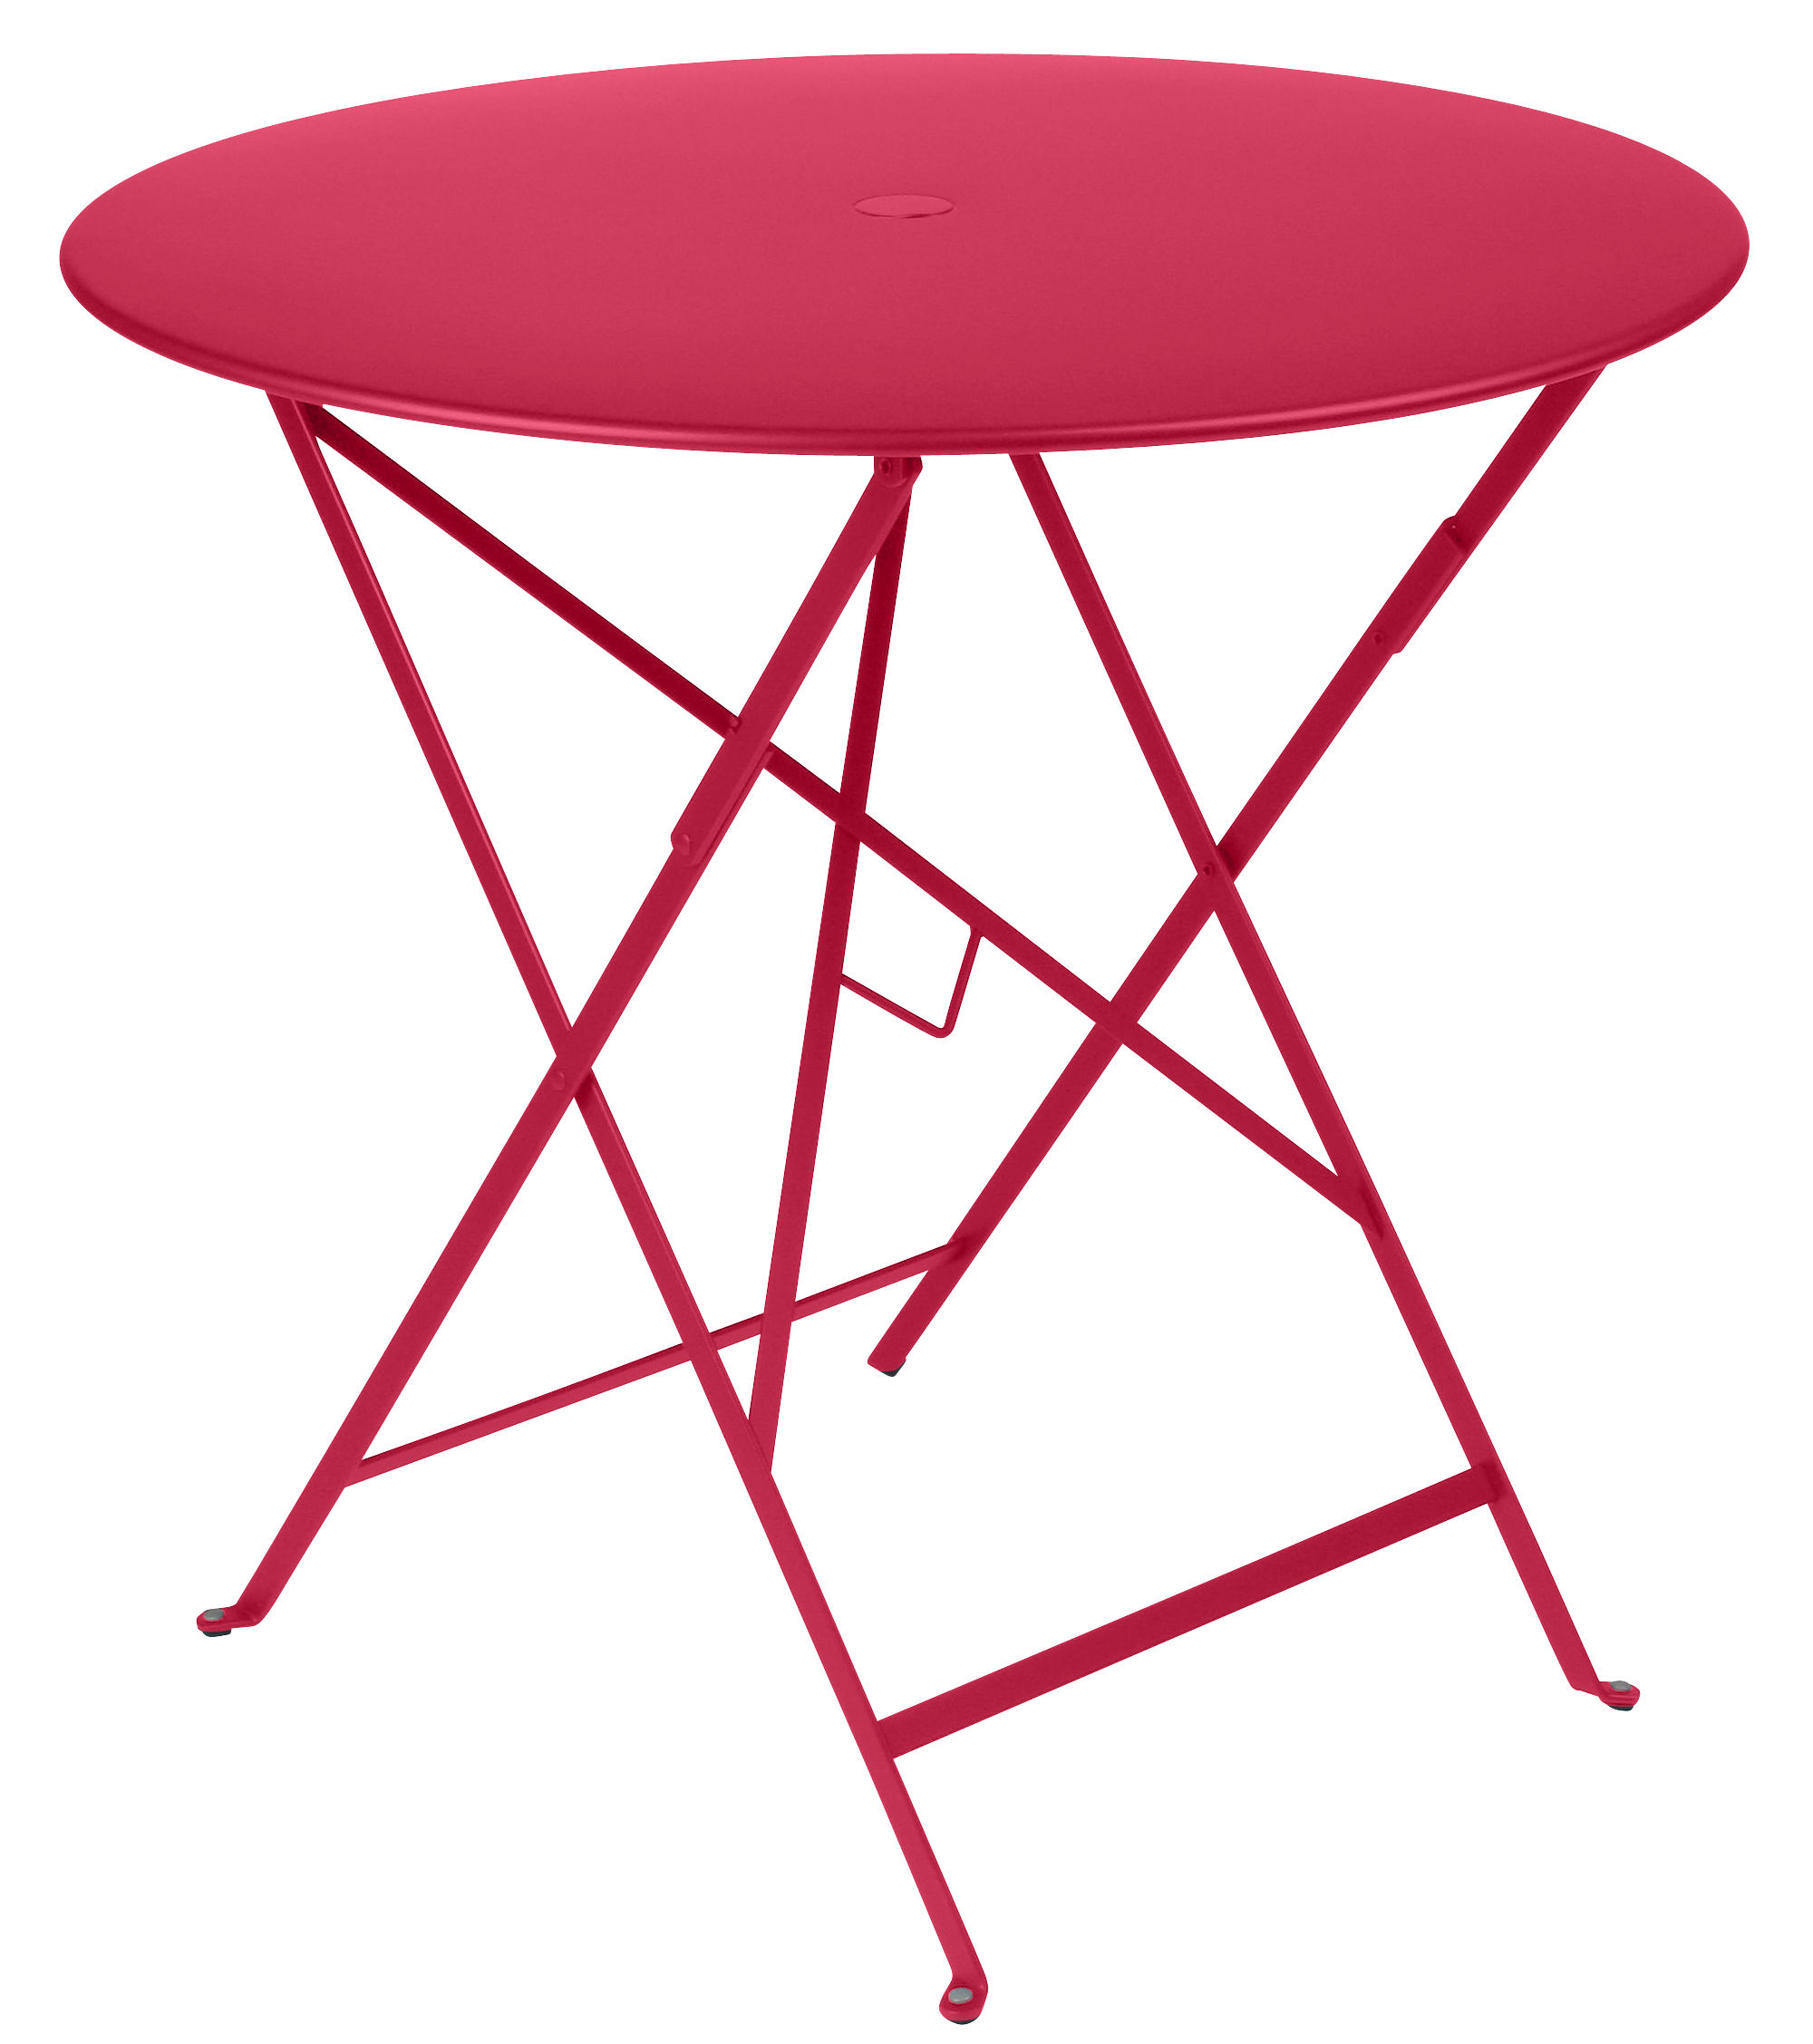 Outdoor - Garden Tables - Bistro Foldable table - /Ø 77 cm - hole for parasol by Fermob - Praline pink - Lacquered steel